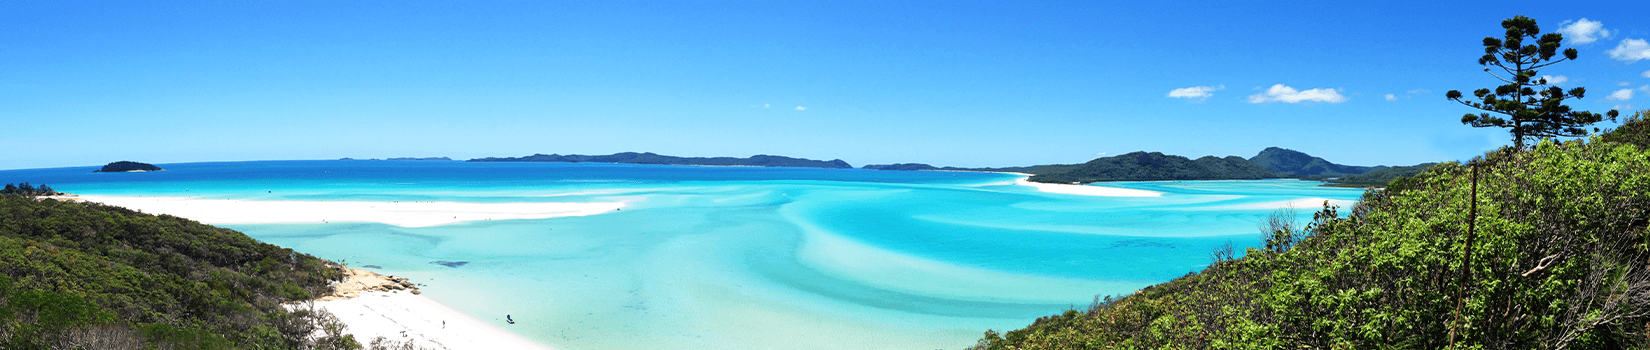 Popular Islands to visit in the Whitsundays